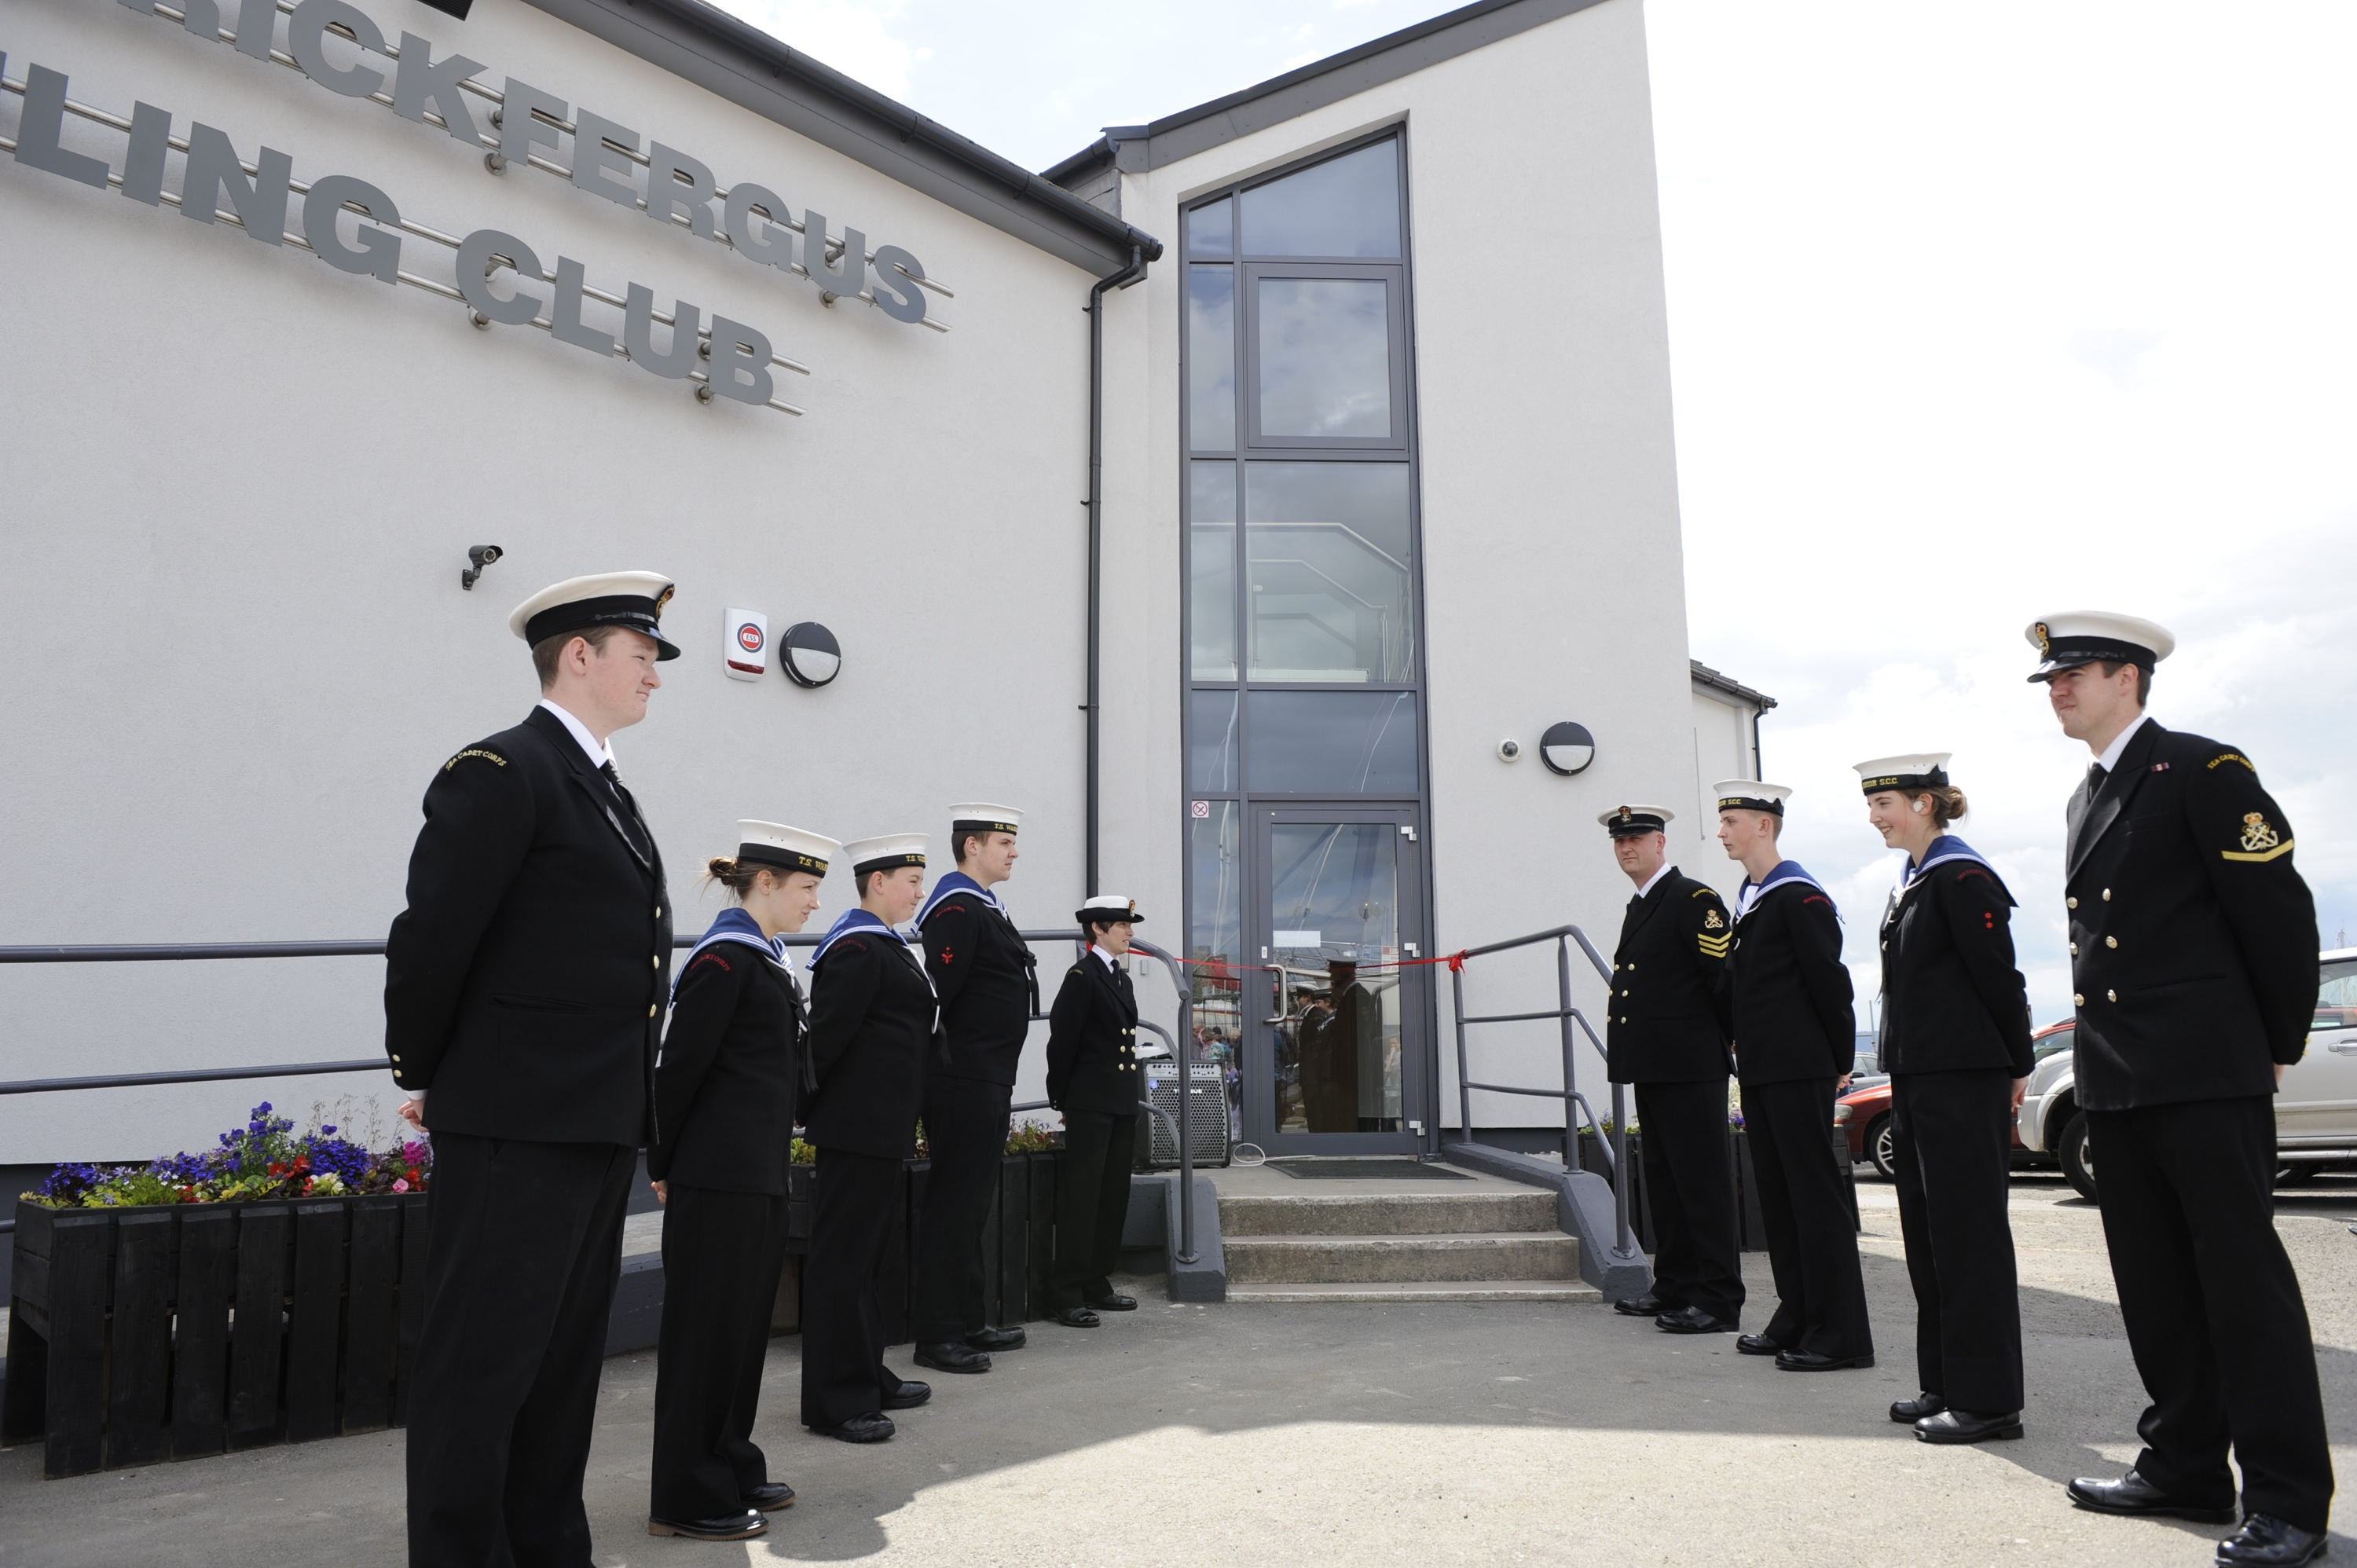 Carrick Sailing Club re-opens two years after devastating fire